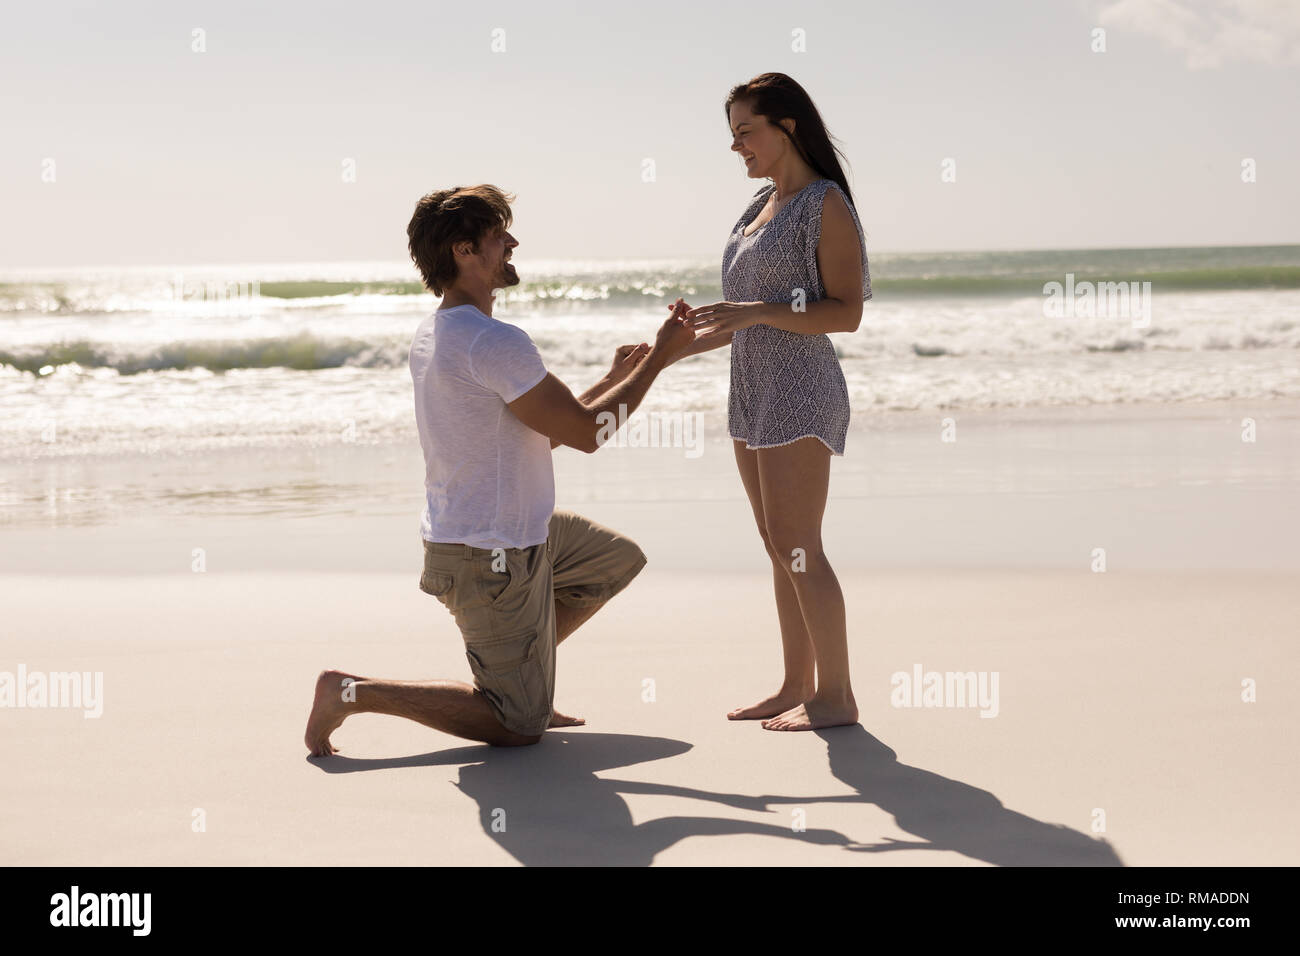 Romantic young man proposing to a woman on his knee Stock Photo